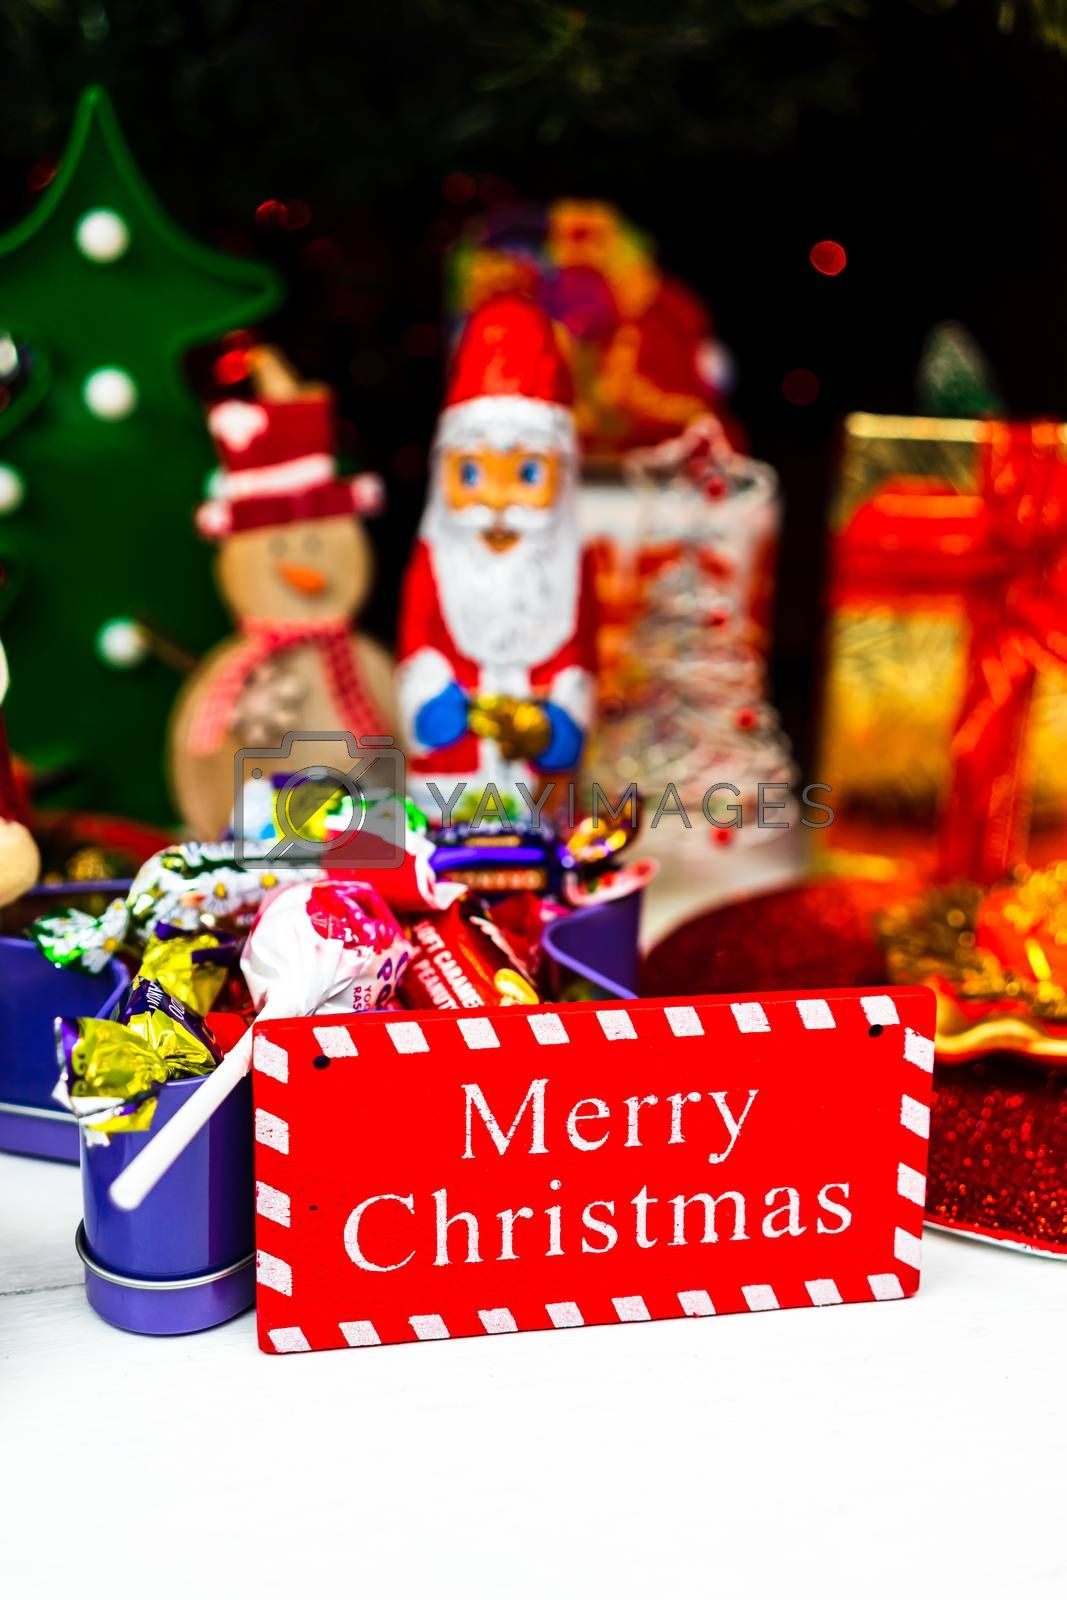 Christmas ornaments decorations and gifts under the  Christmas tree.